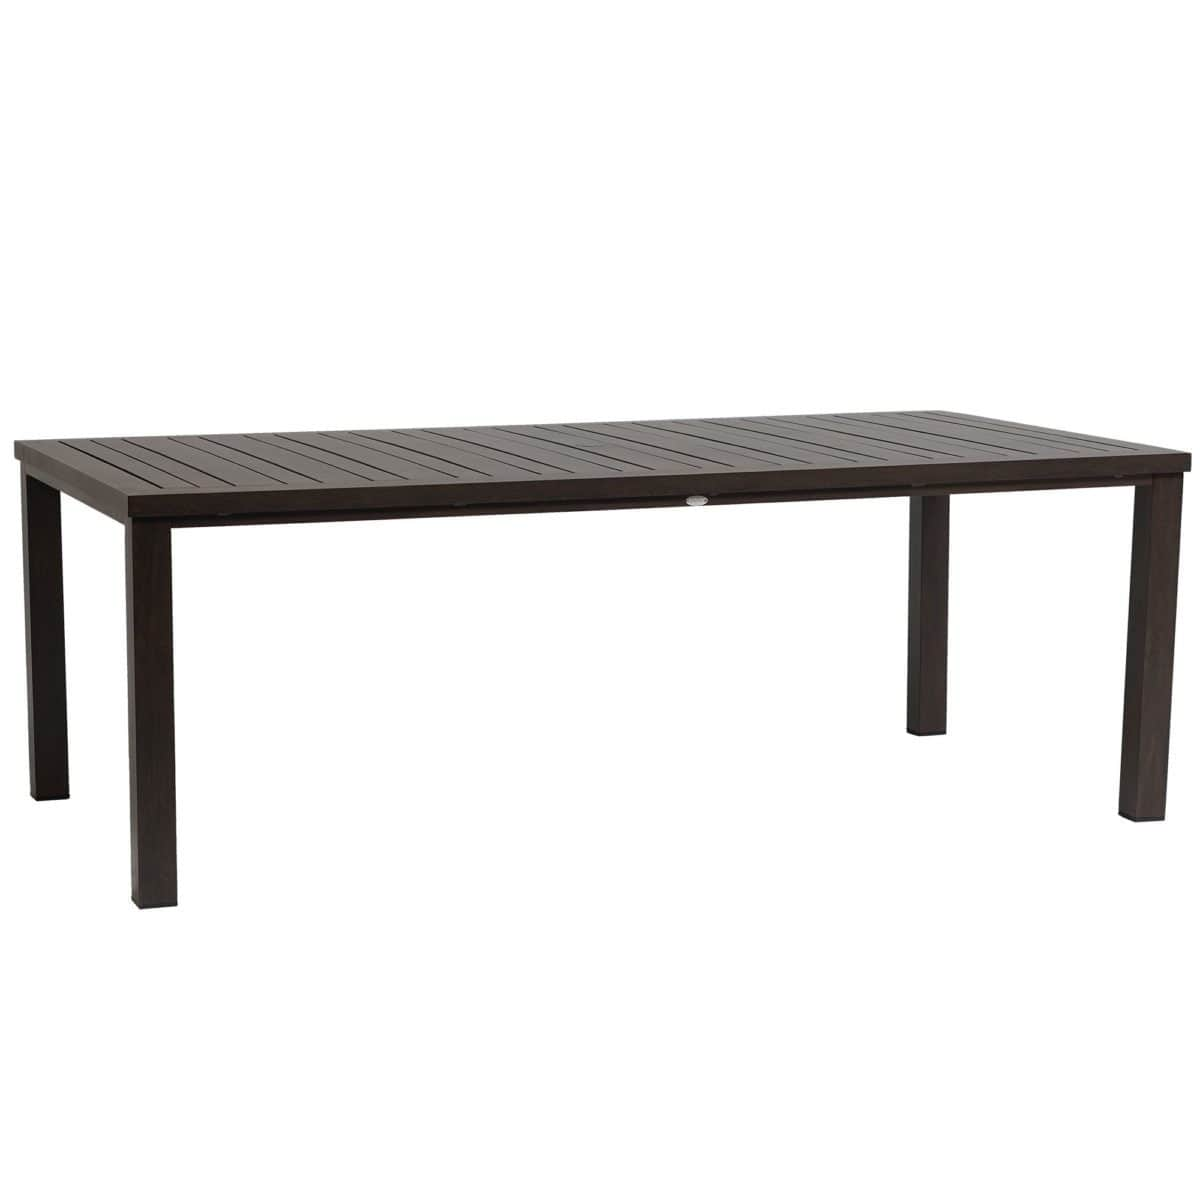 "Ratana Dining Table Canbria 84"" x 44"" Rectangle Dining Table w/Umbrella Hole"